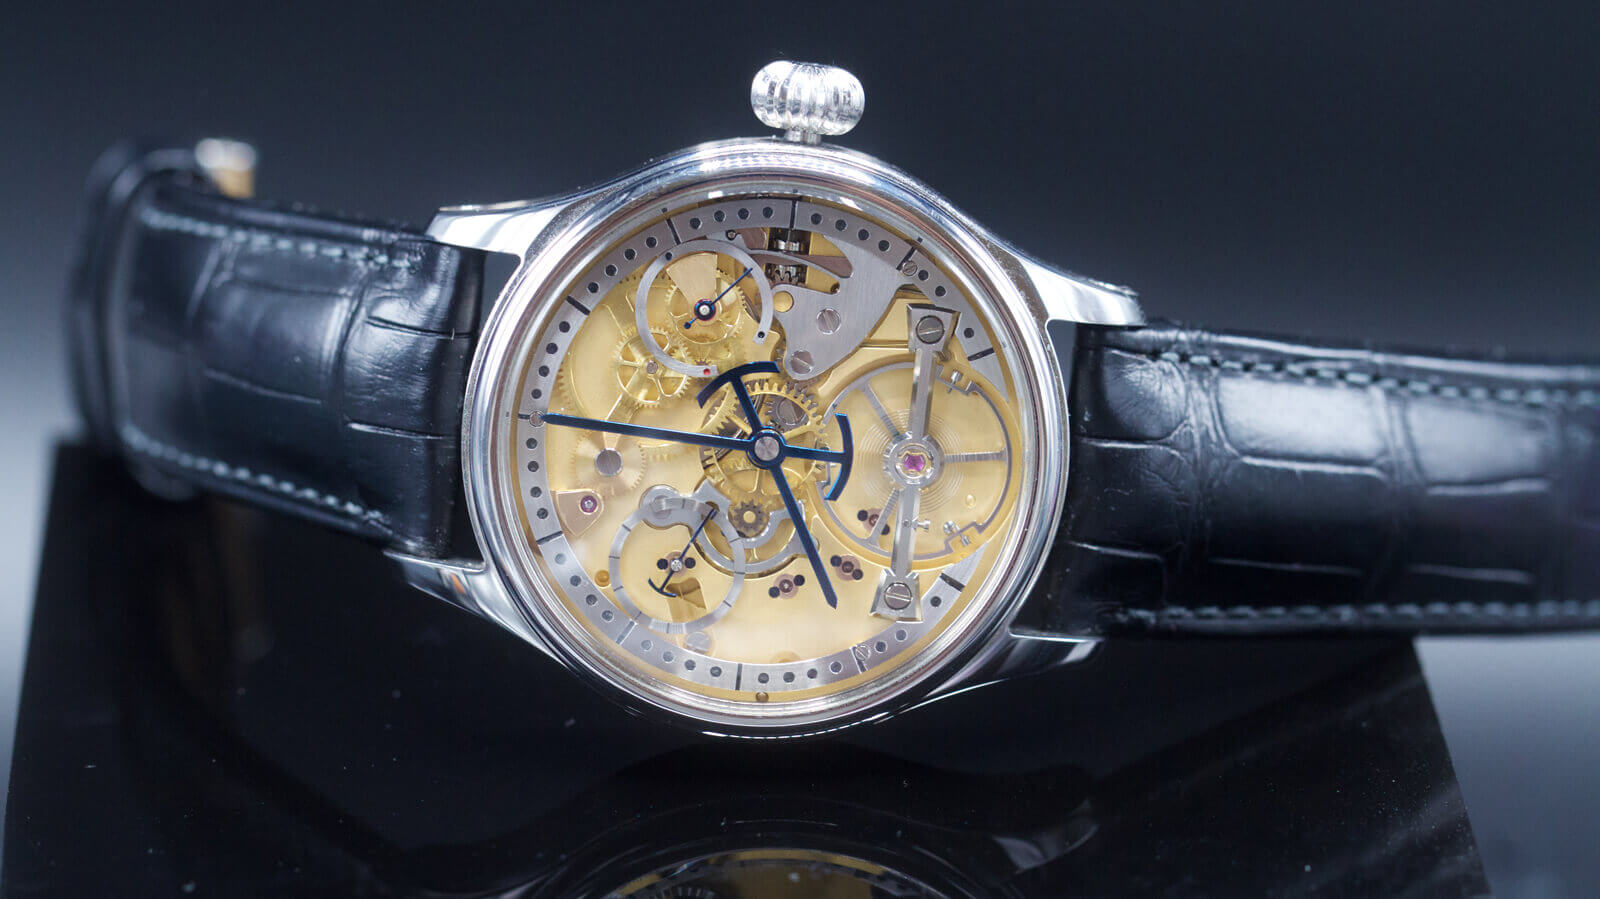 Garrick S1 - British watch made in Norfolk